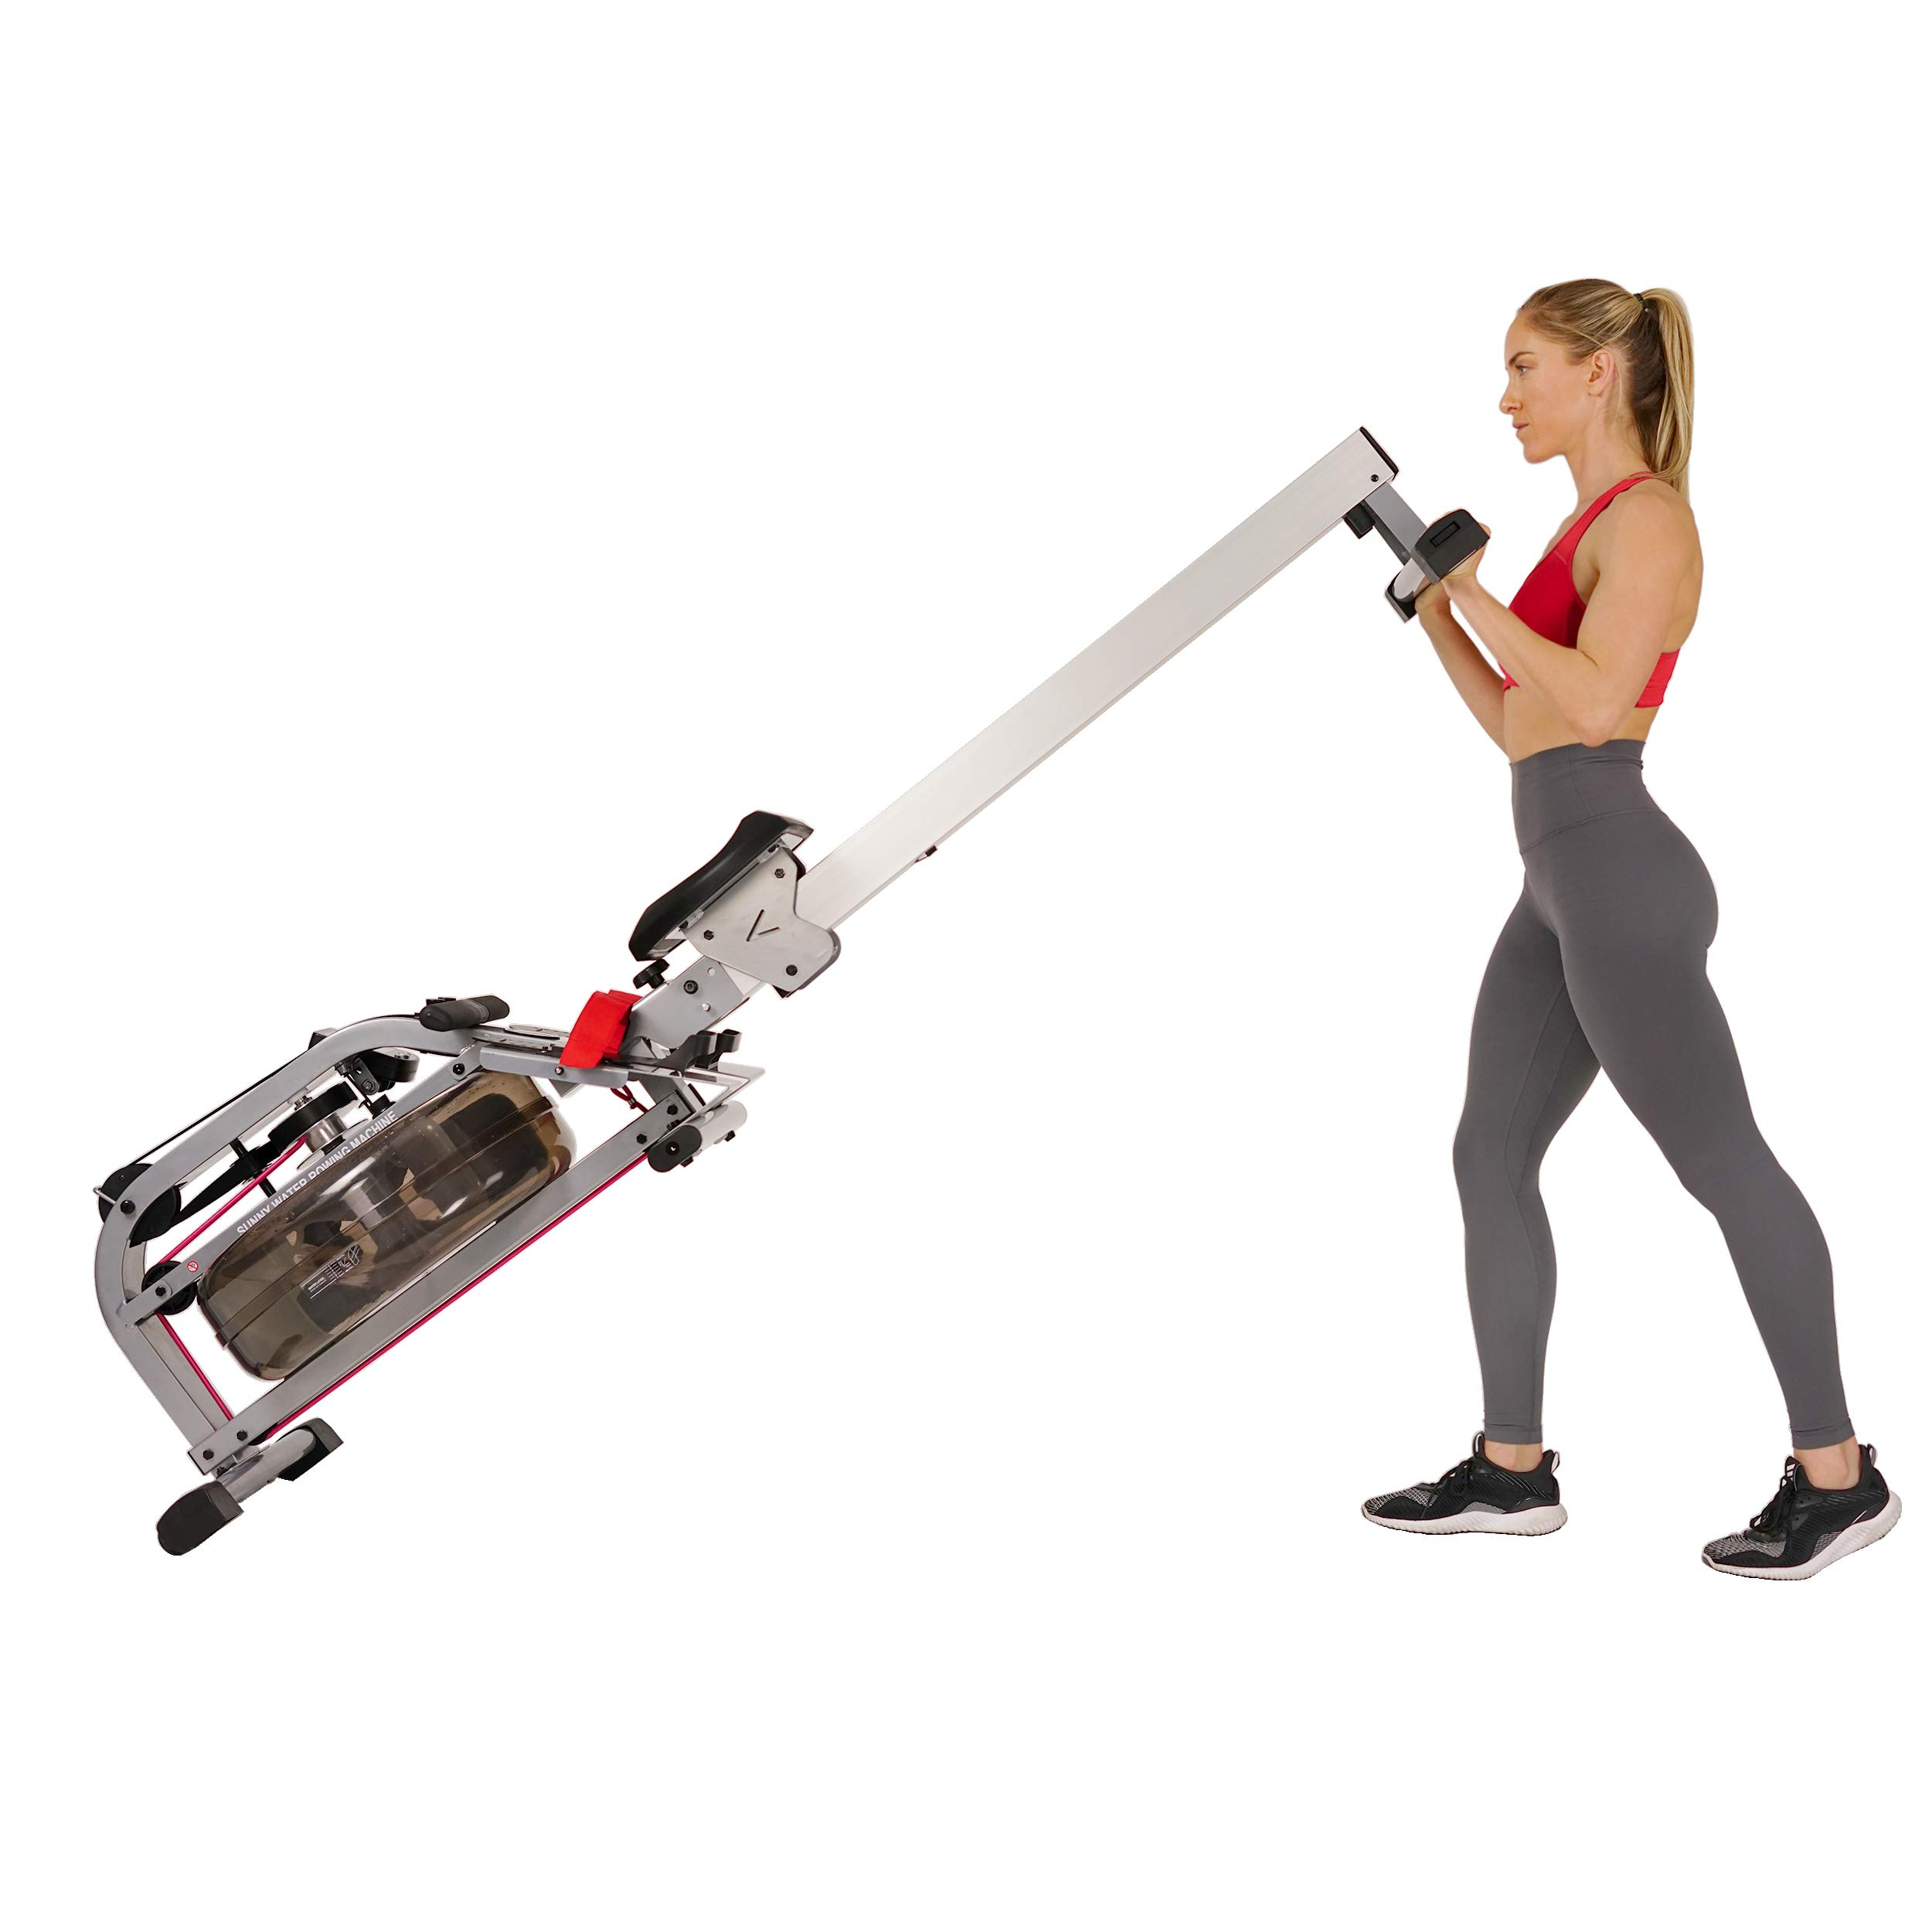 Sunny Health & Fitness Water Rowing Machine Rower w/LCD Monitor - SF-RW5866 by Sunny Health & Fitness (Image #11)